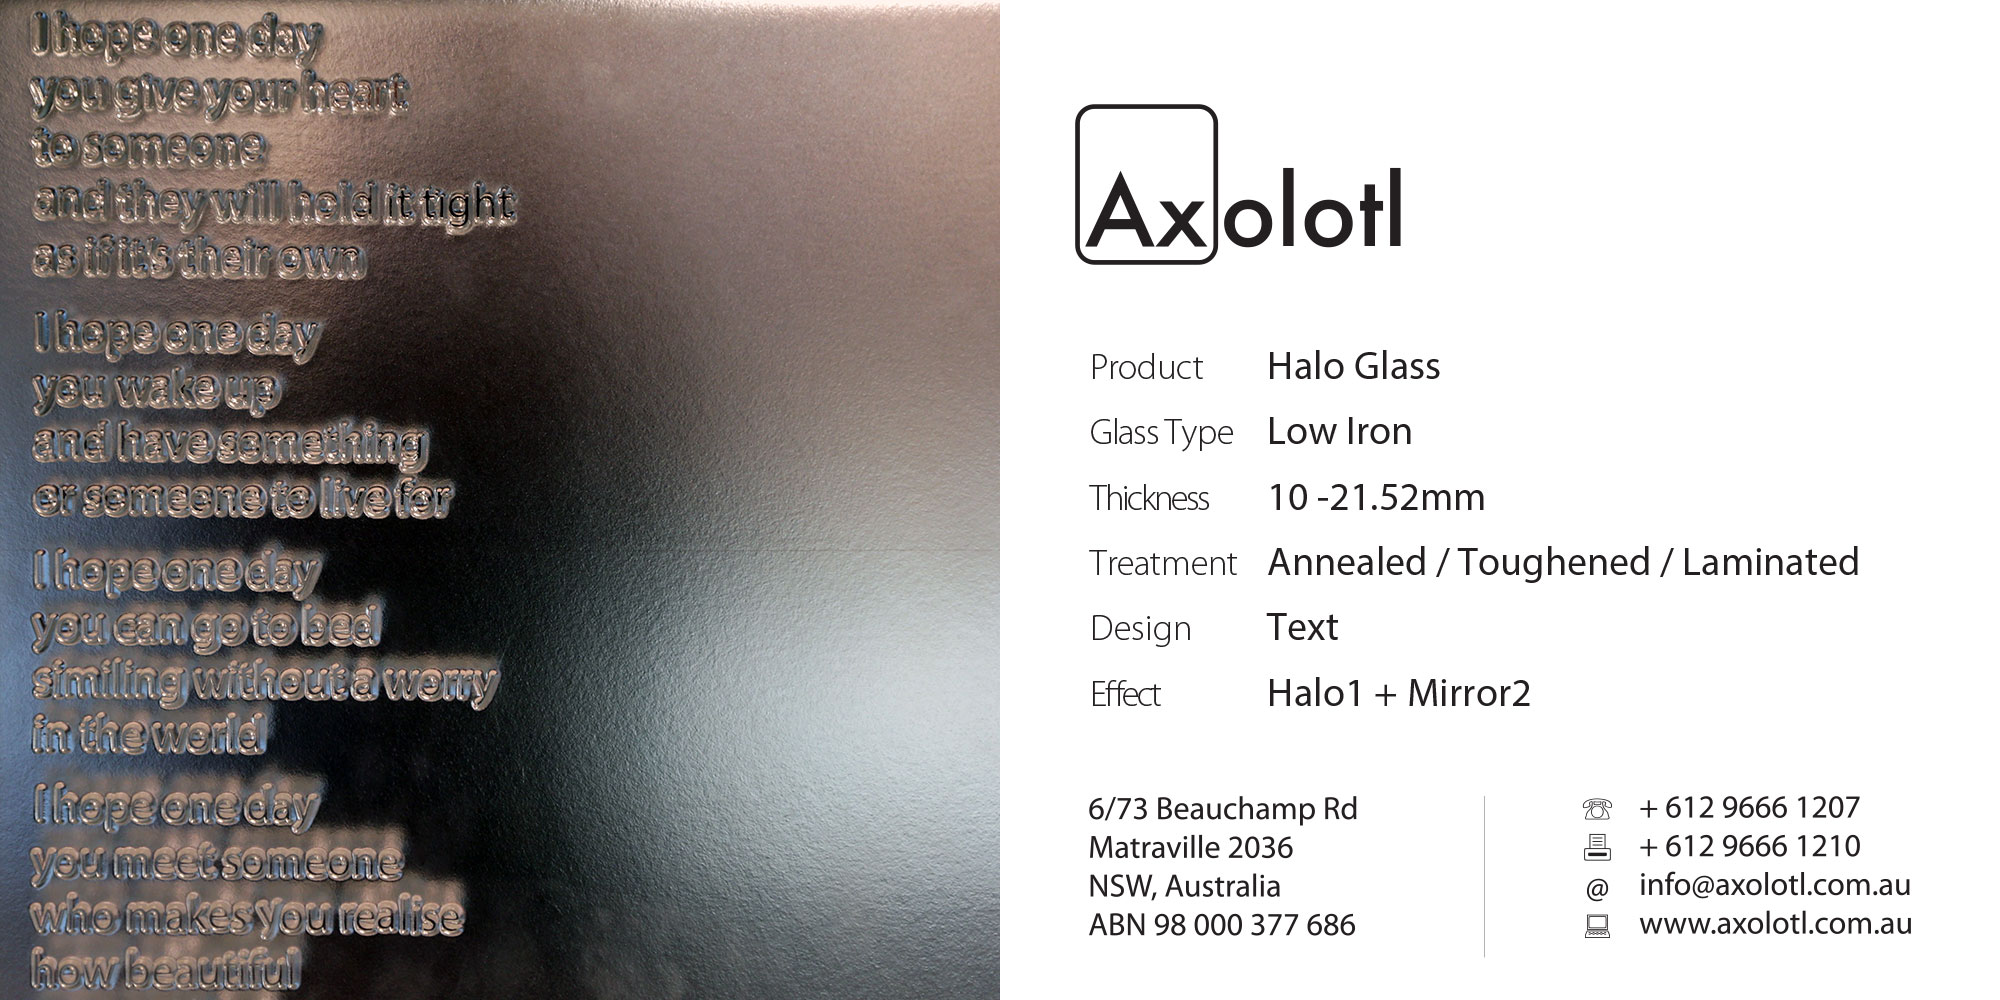 Axolotl_Glass_Halo_Text_Mirror.jpg